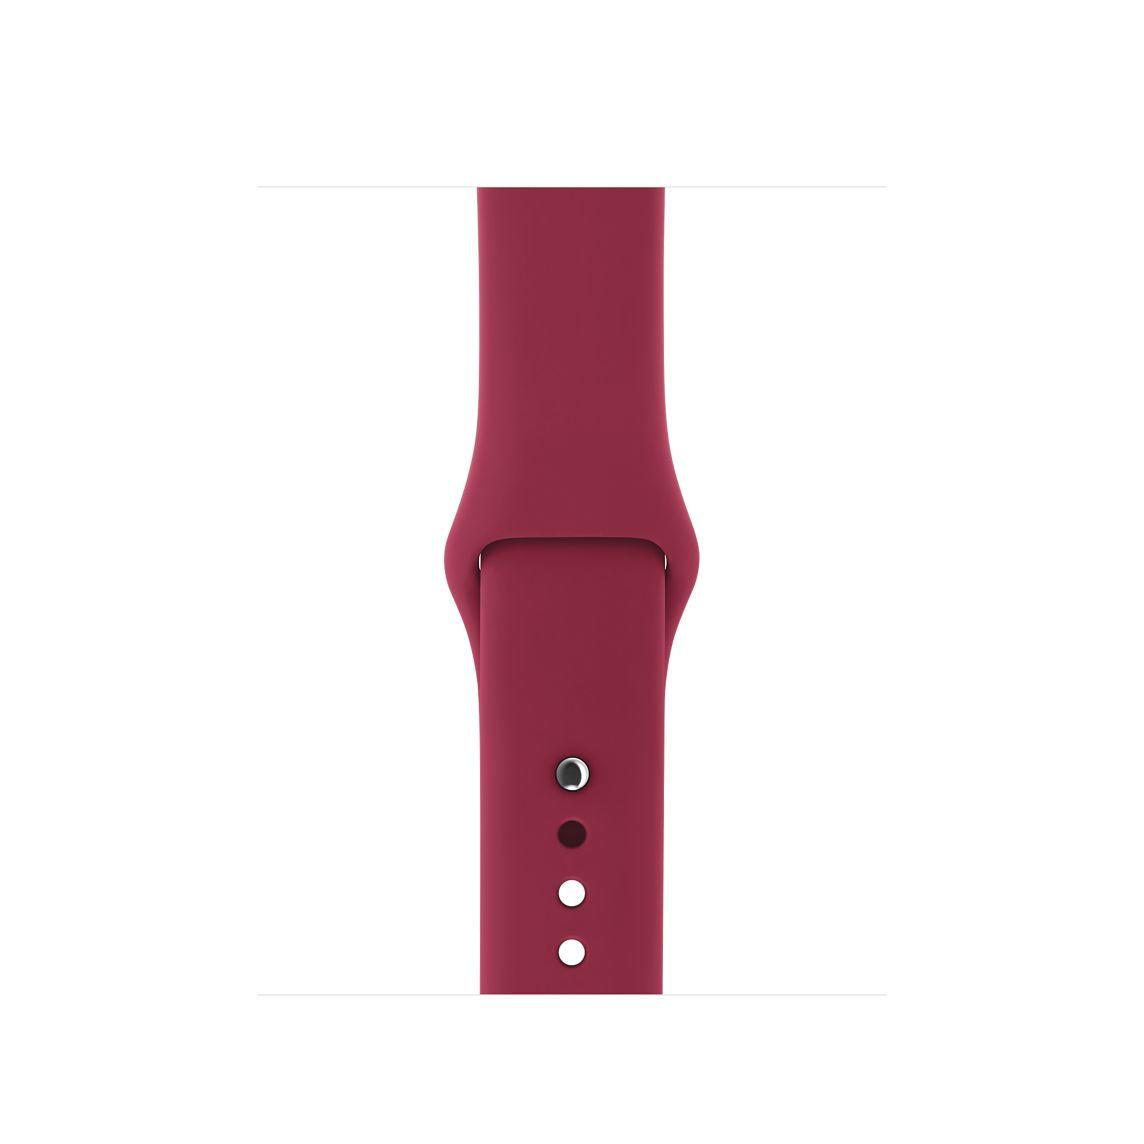 38mm Rose Red Sport Band - S/M & M/L $49.00